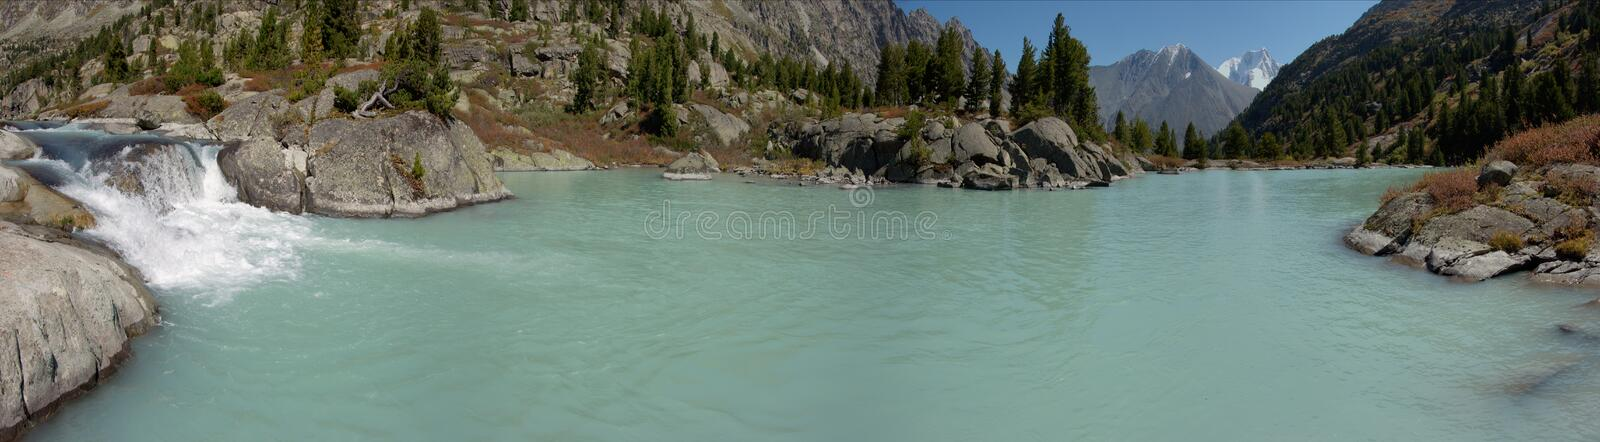 Panorama with a waterfalls royalty free stock image